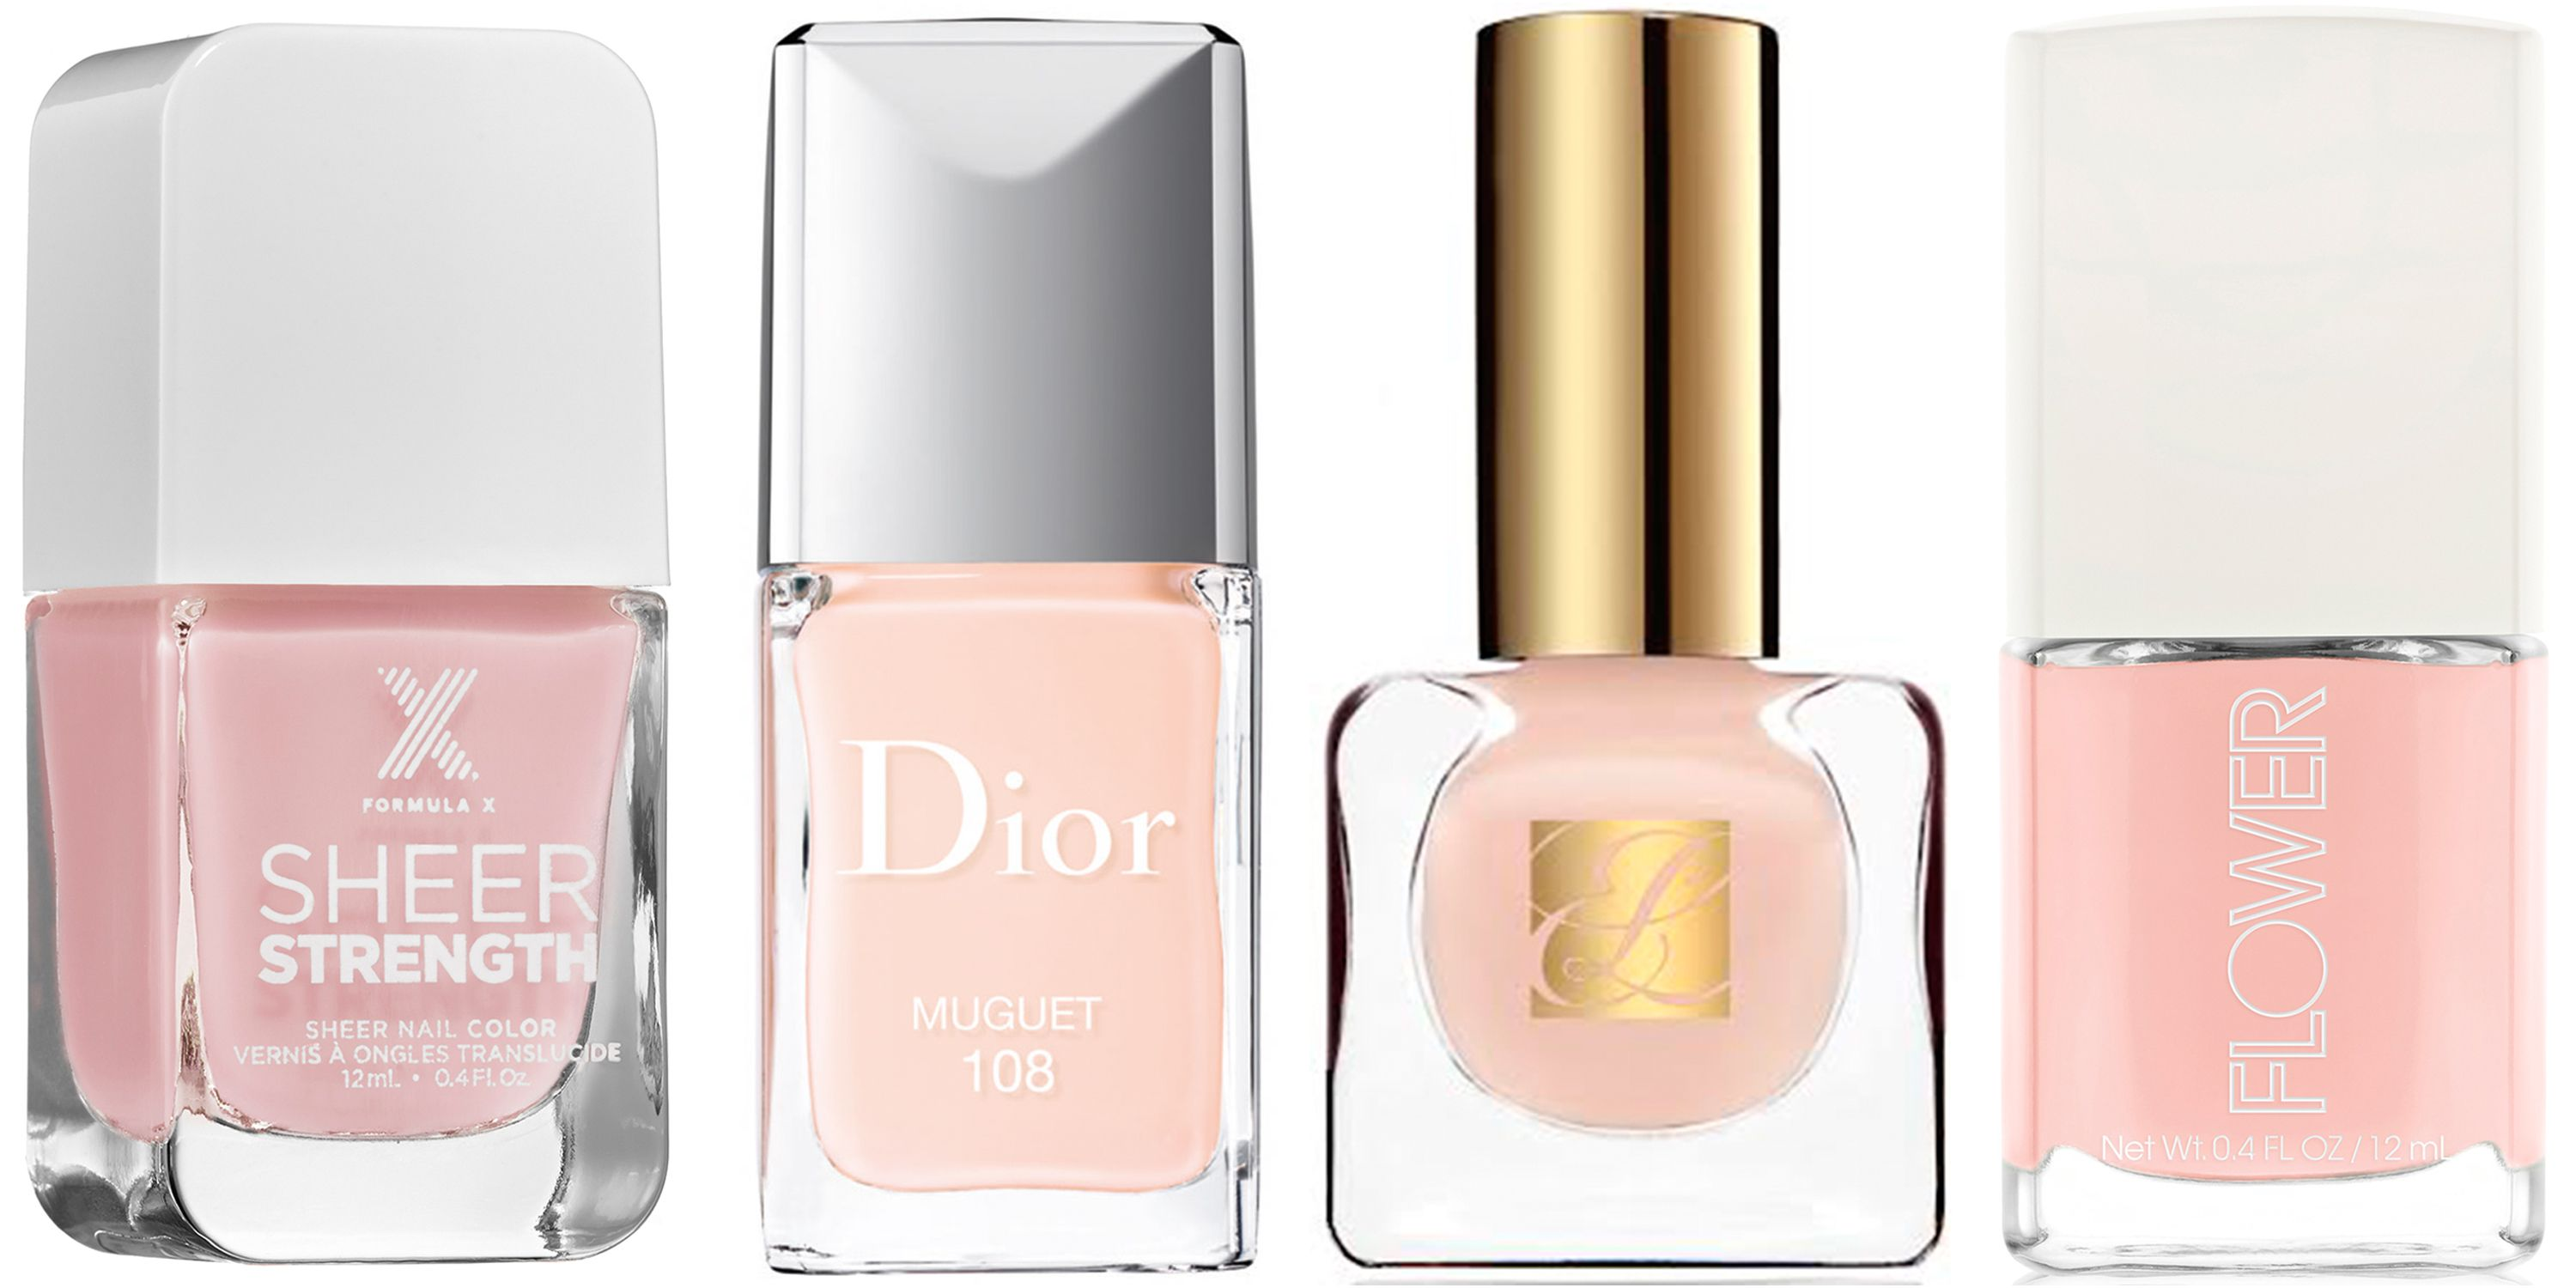 """<p><strong>Formula X </strong>Sheer Strength Nail Polish in Wondrous,$13, <a href=""""http://www.sephora.com/sheer-strength-treatment-nail-polish-P393226"""">sephora.com</a>; <strong>Dior </strong>Vernis in Muguet, $27, <a href=""""http://www.dior.com/beauty/en_us/fragrance-beauty/makeup/nails/nail-lacquers/pr-diorvernis-y0002959-couture-color-gel-shine-long-wear-nail-lacquer.html"""" target=""""_blank"""">dior.com</a>;  <strong>Estée Lauder </strong><span class=""""redactor-invisible-space"""">Pure Color Nail Lacquer in Ballerina Pink, $21, <a href=""""https://www.esteelauder.com/product/631/13562/Product-Catalog/Makeup/Pure-Color/Nail-Lacquer"""" target=""""_blank"""">esteelauder.com</a>; <strong>Flower Beauty </strong><span class=""""redactor-invisible-space"""">Nail Lacquer in Nail'd It, $5, <a href=""""http://flowerbeauty.com/nail/detail/29/flower-naild-it-nail-lacquer/"""" target=""""_blank"""">flowerbeauty.com</a>.</span></span></p>"""